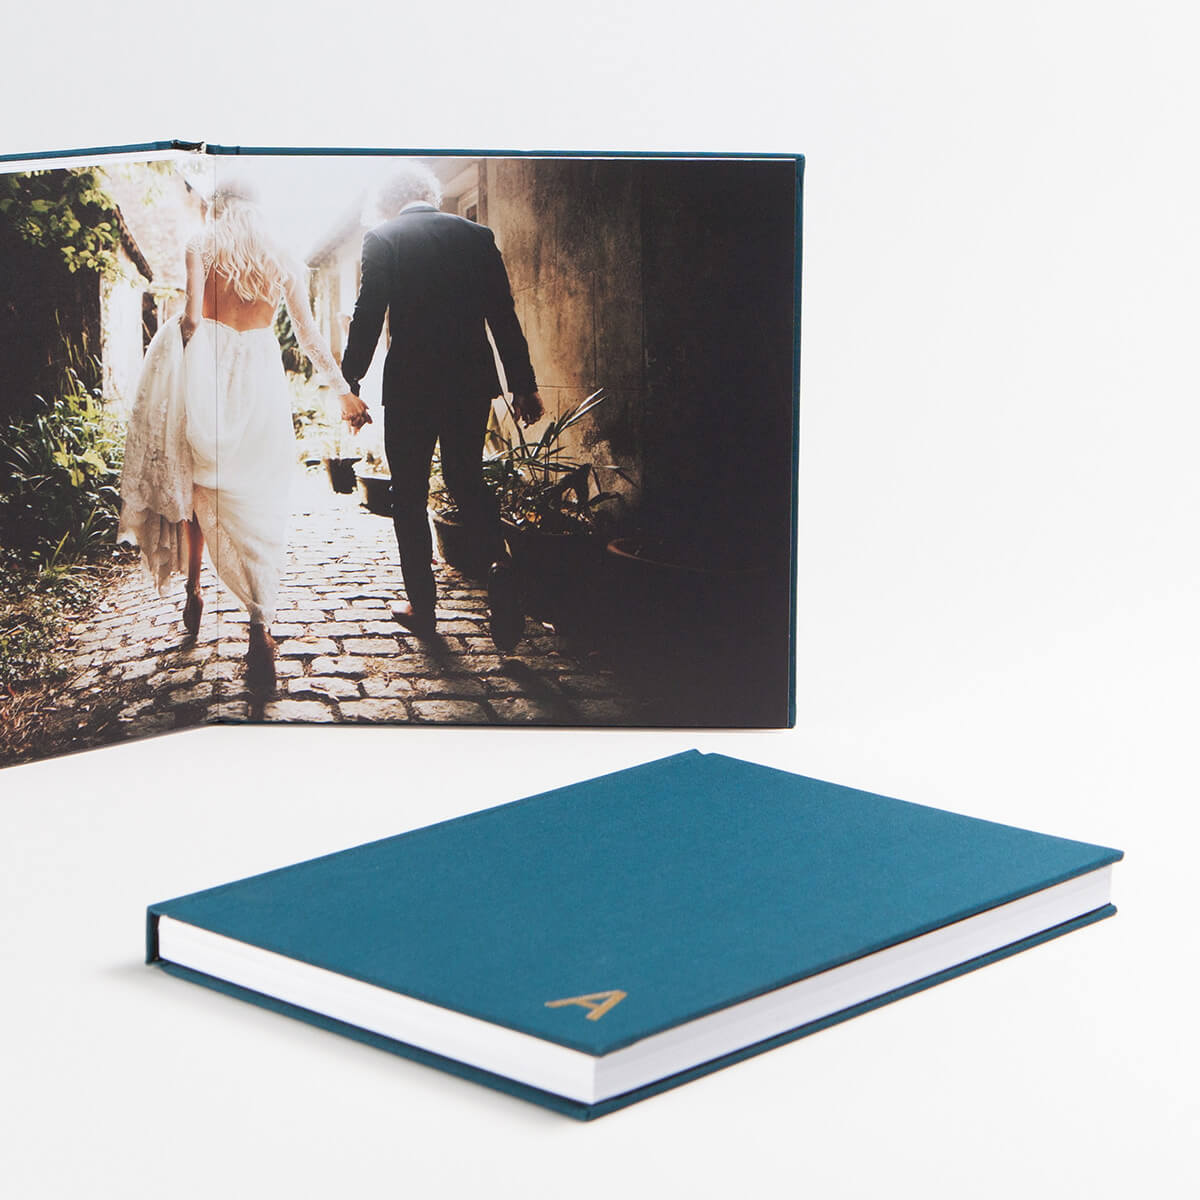 Wedding photos in a Layflat Photo Album